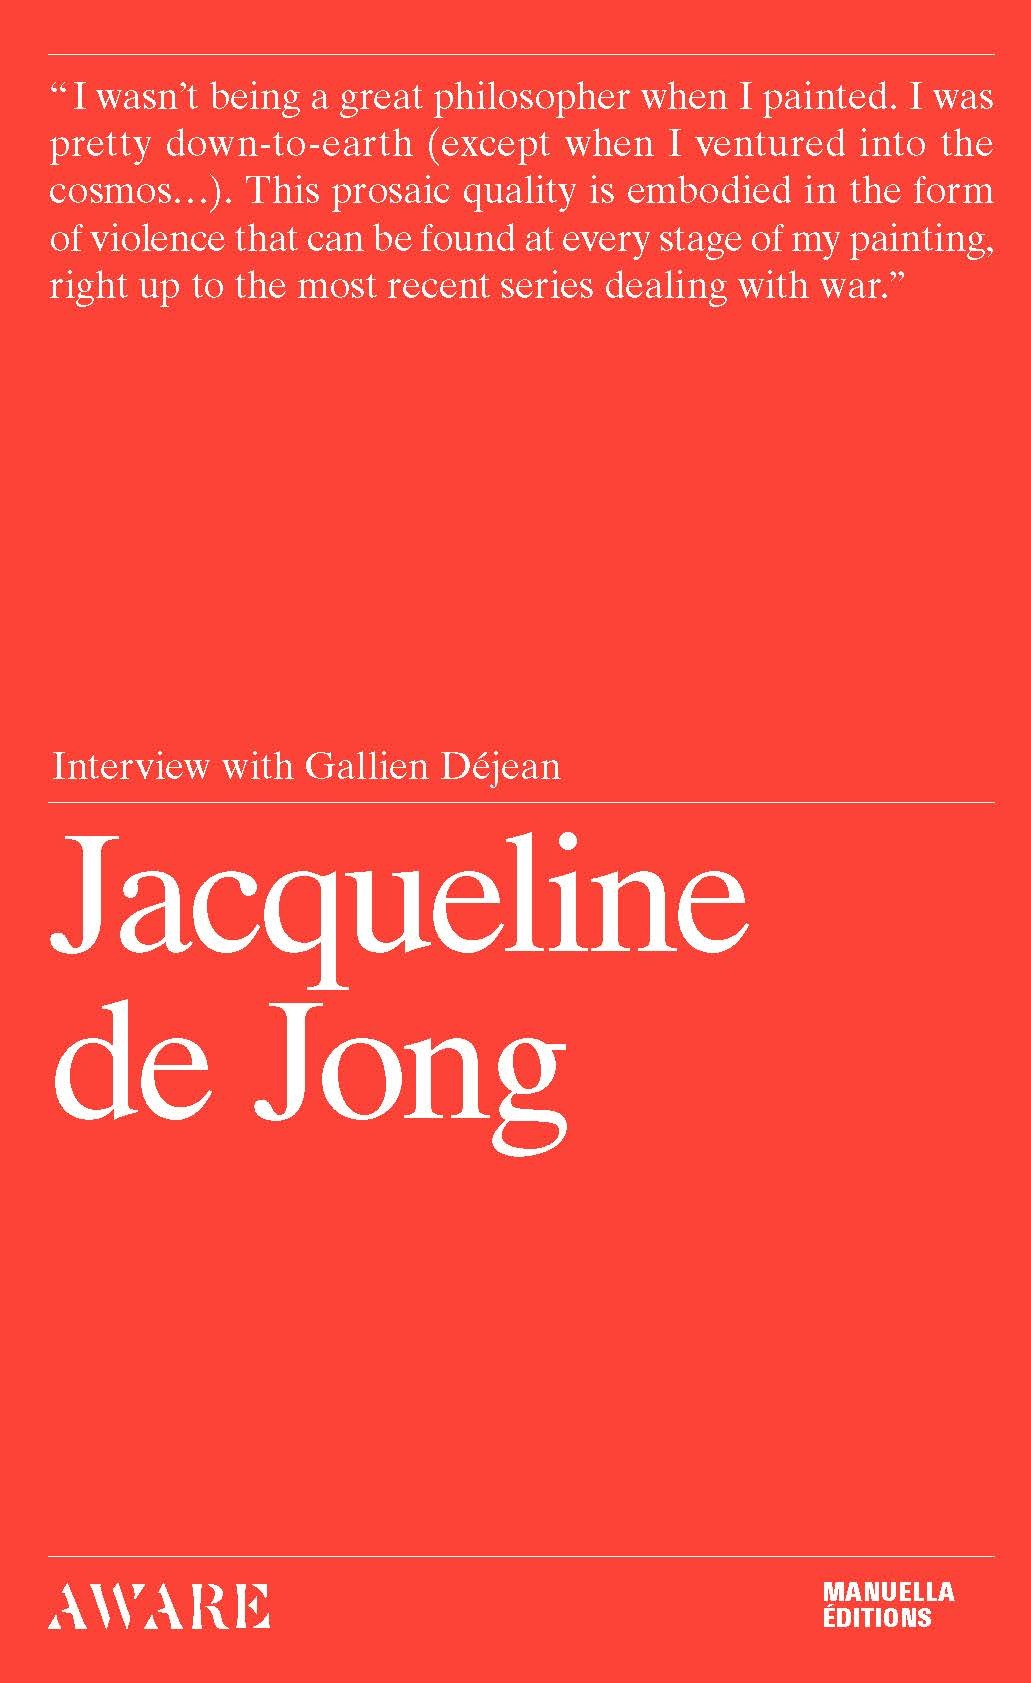 JACQUELINE DE JONG (ANGLAIS) - INTERVIEW WITH GALLIEN DEJEAN